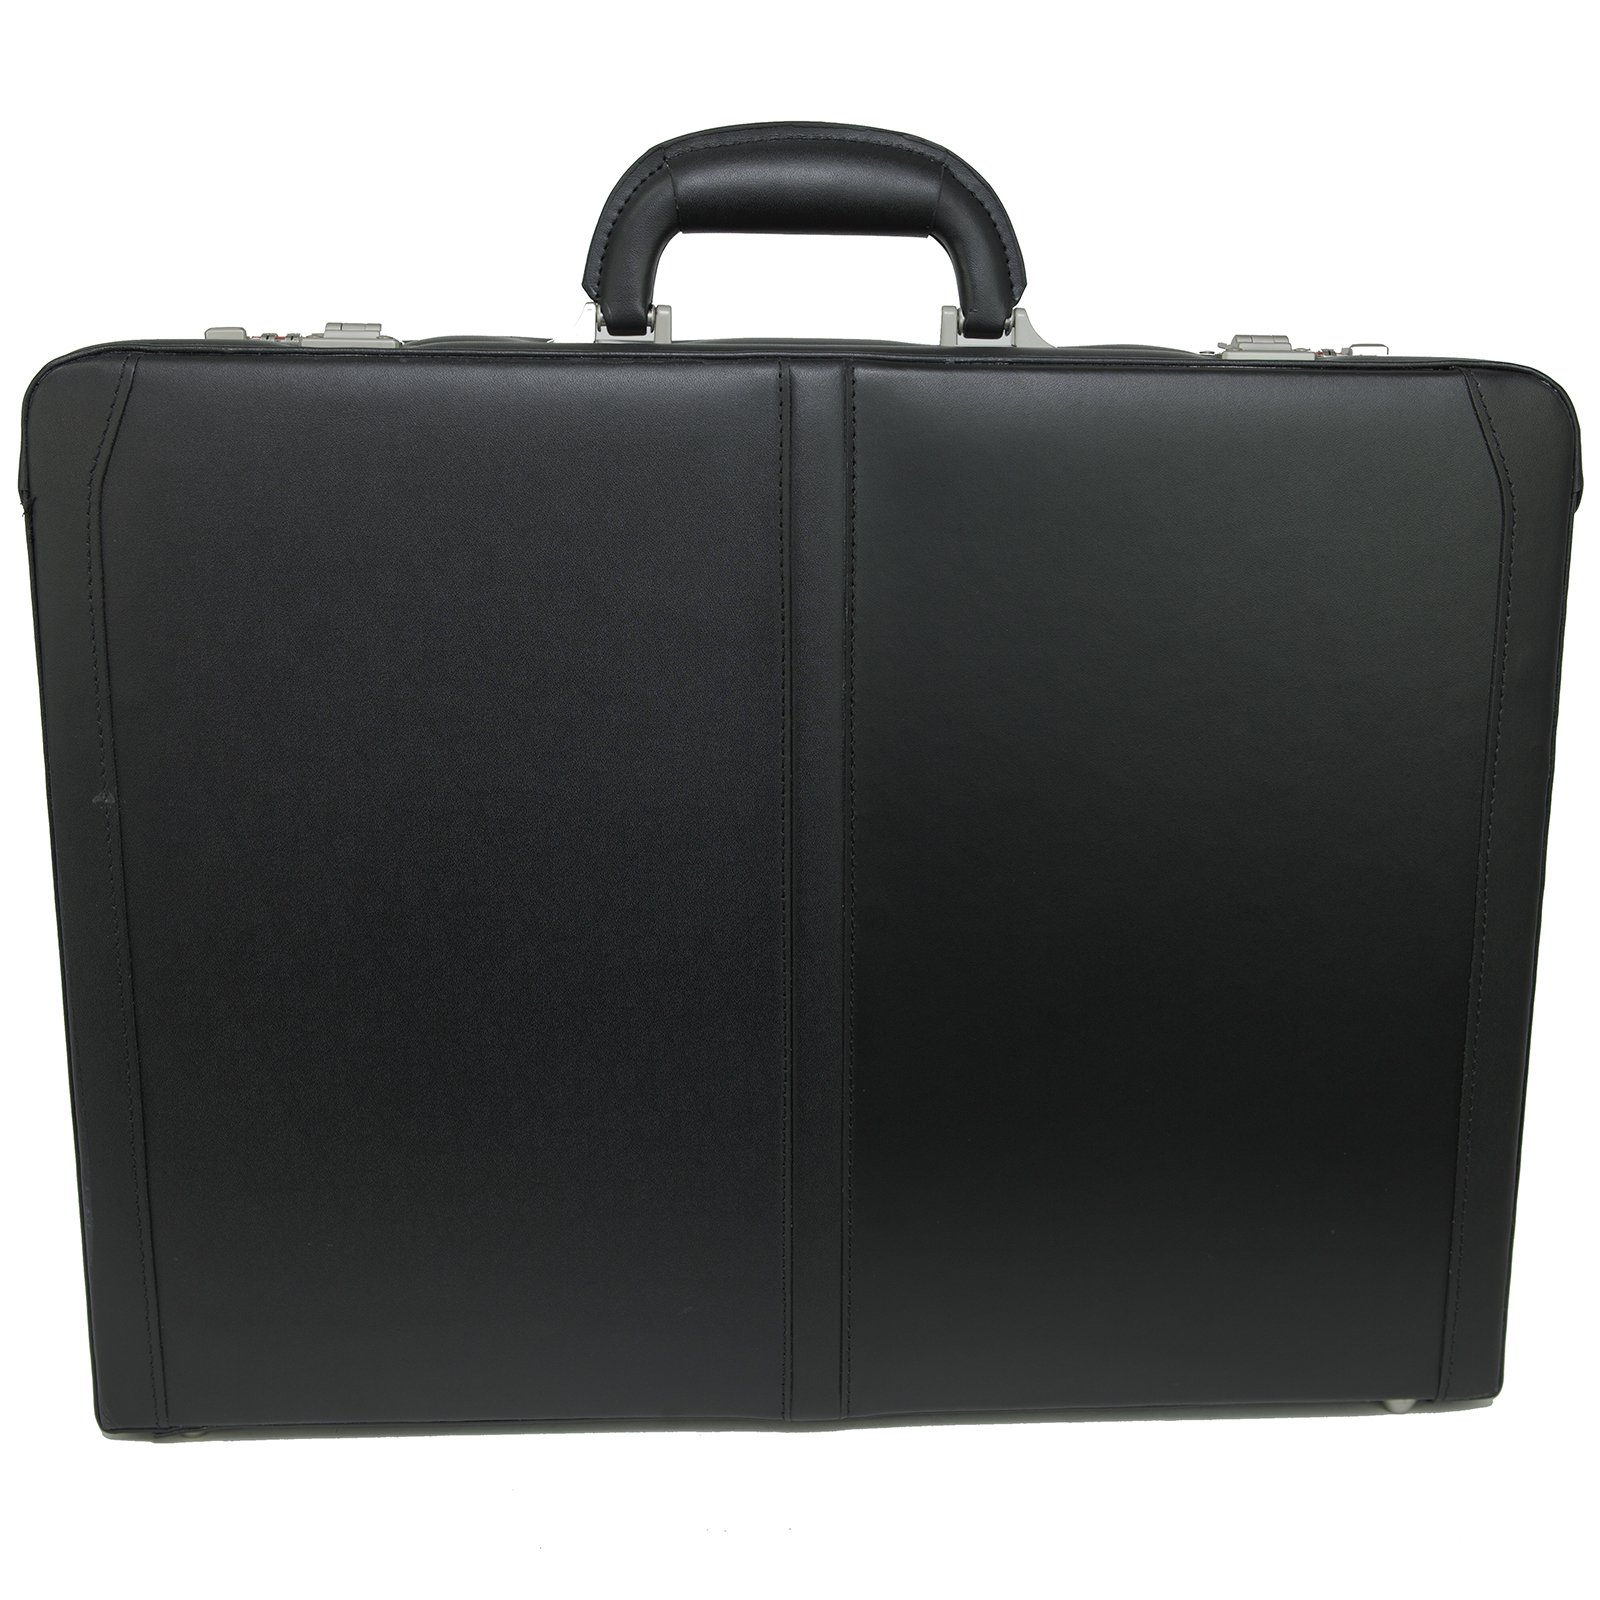 Alpine Swiss Expandable Leather Attache Briefcase Dual Combination Locks 1 Year Warranty by alpine swiss (Image #3)